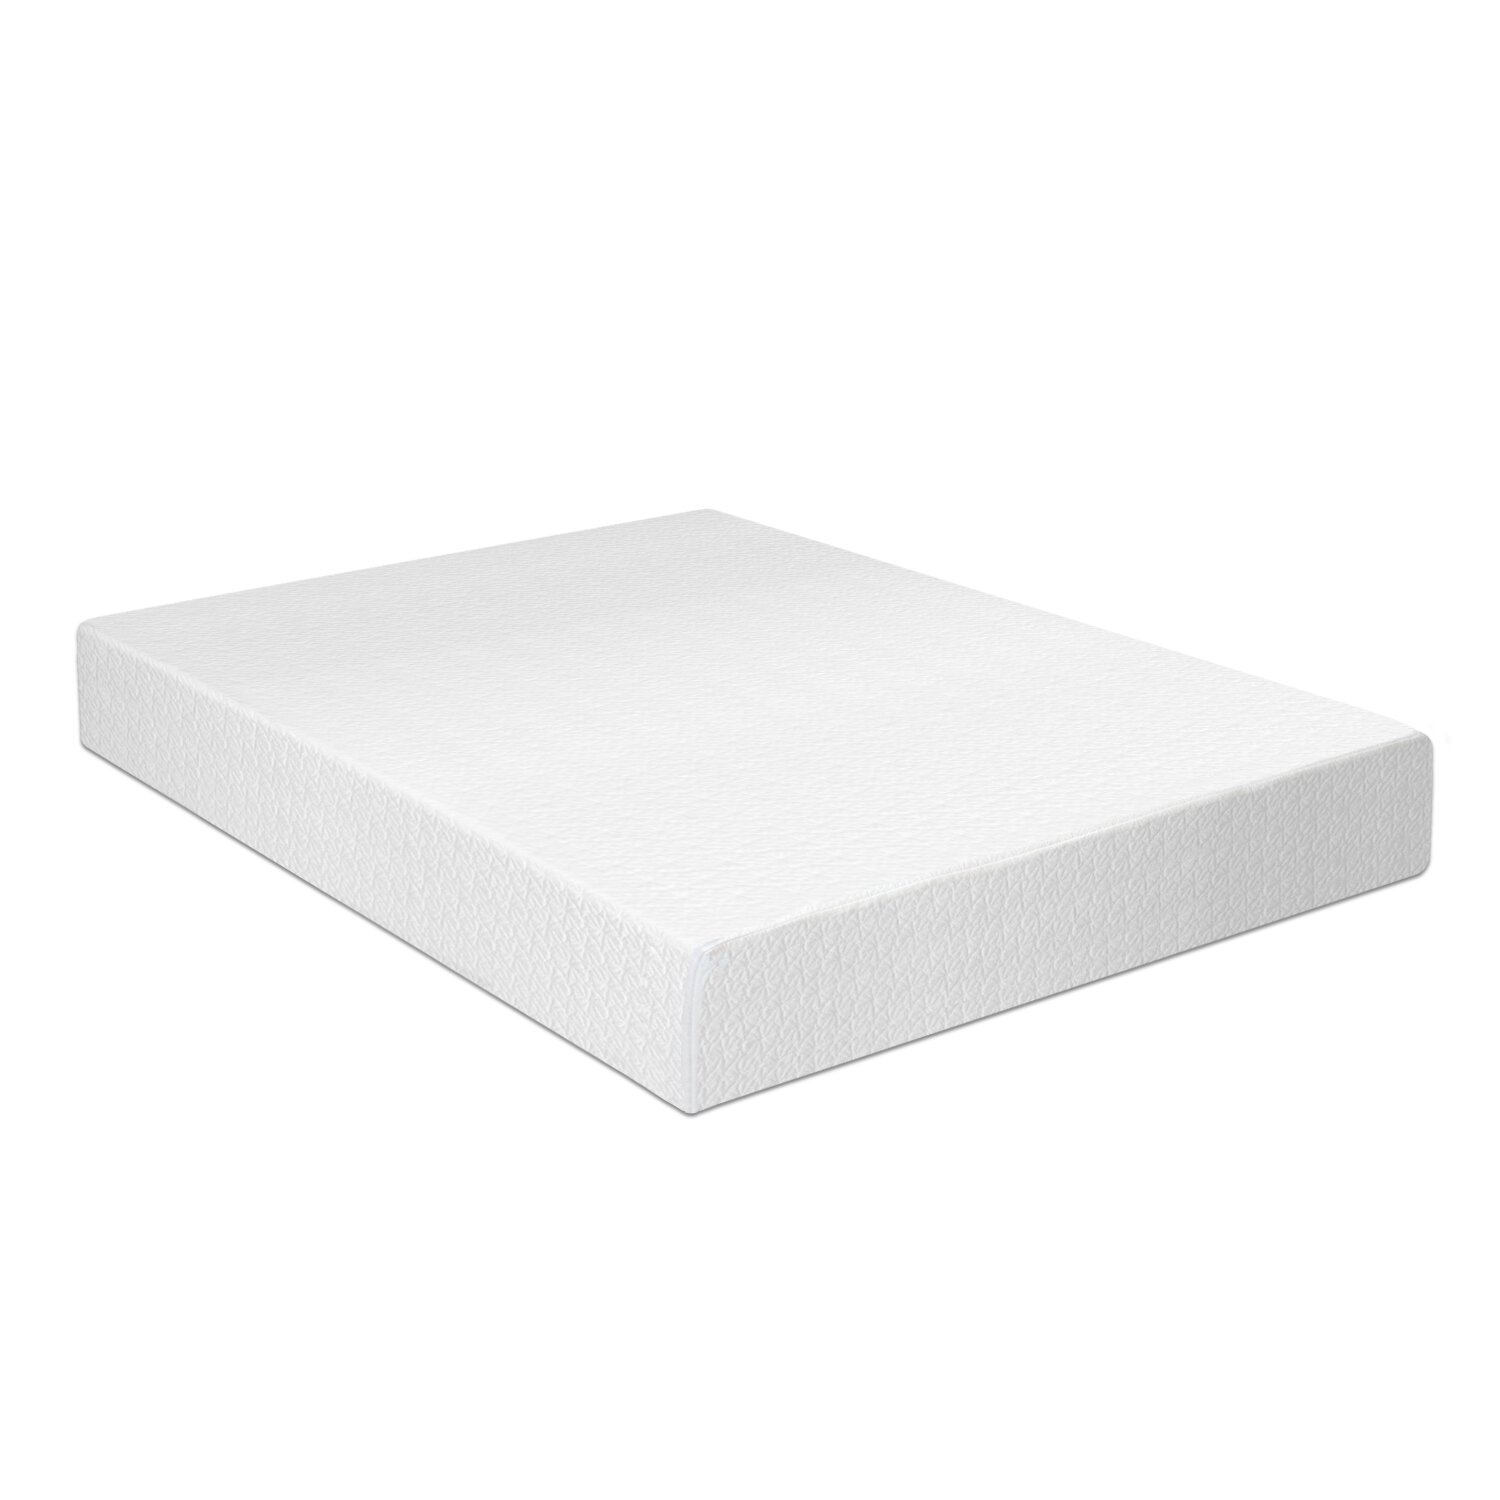 Best Price Quality Best Price Quality 12 Memory Foam Mattress Reviews Wayfair